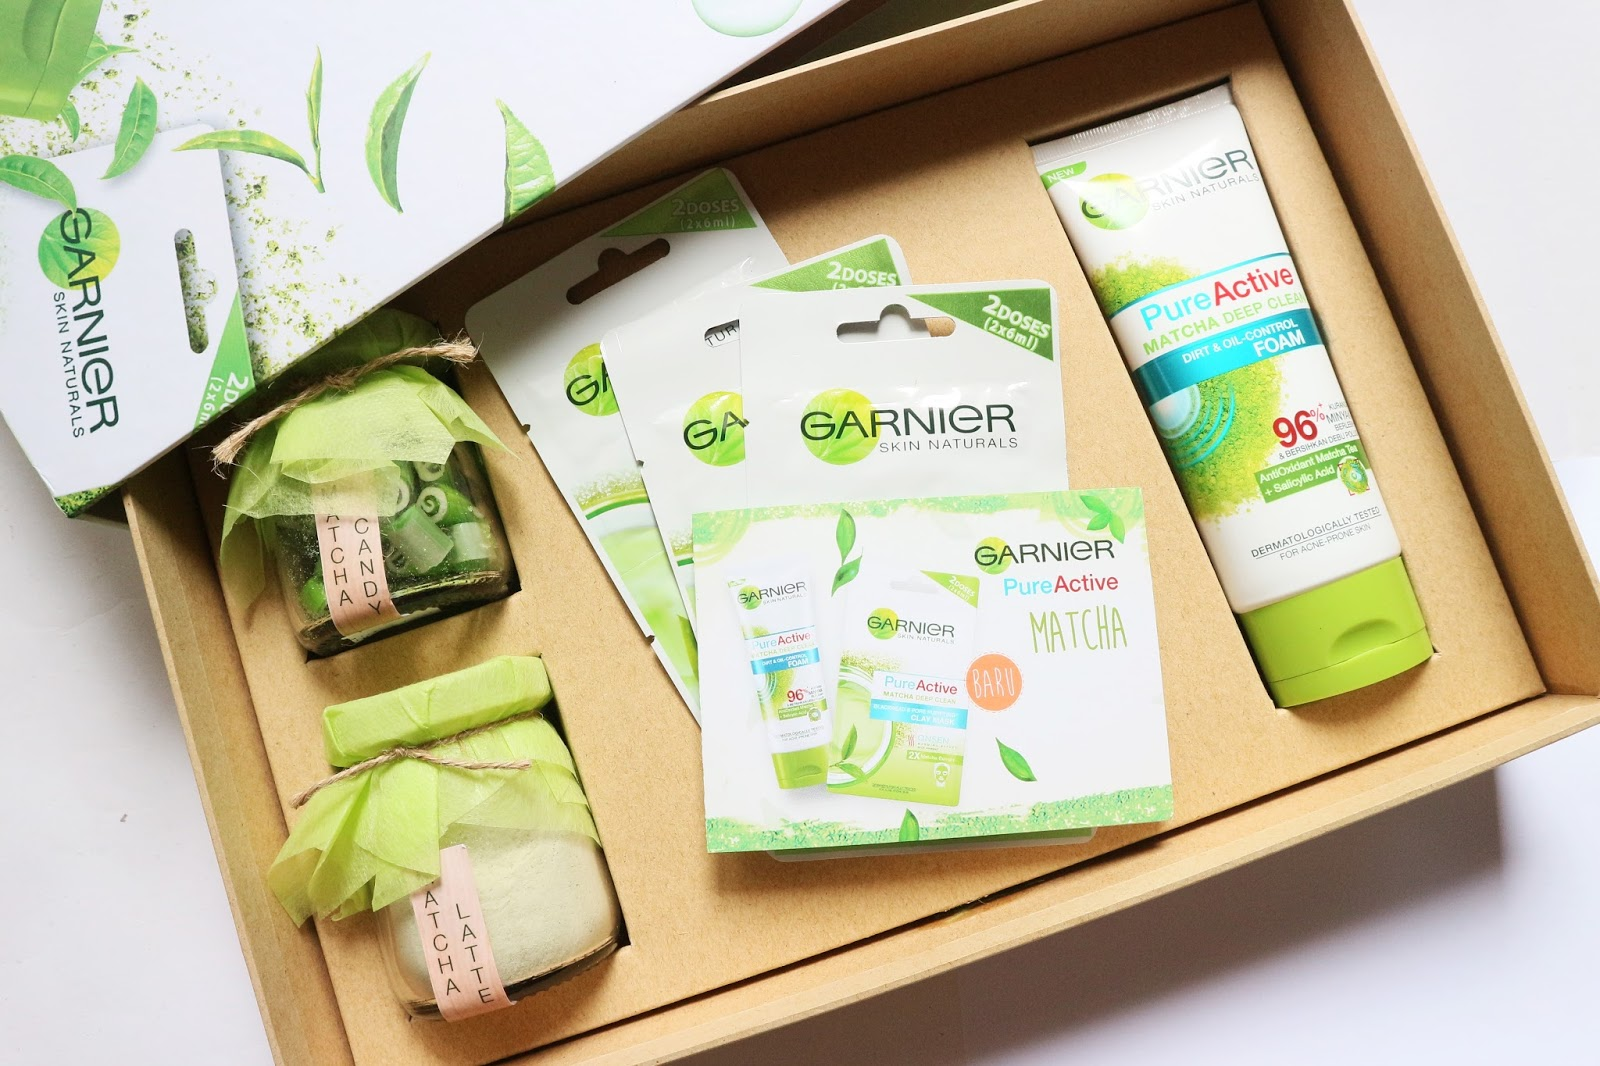 garnier pure active review indonesia